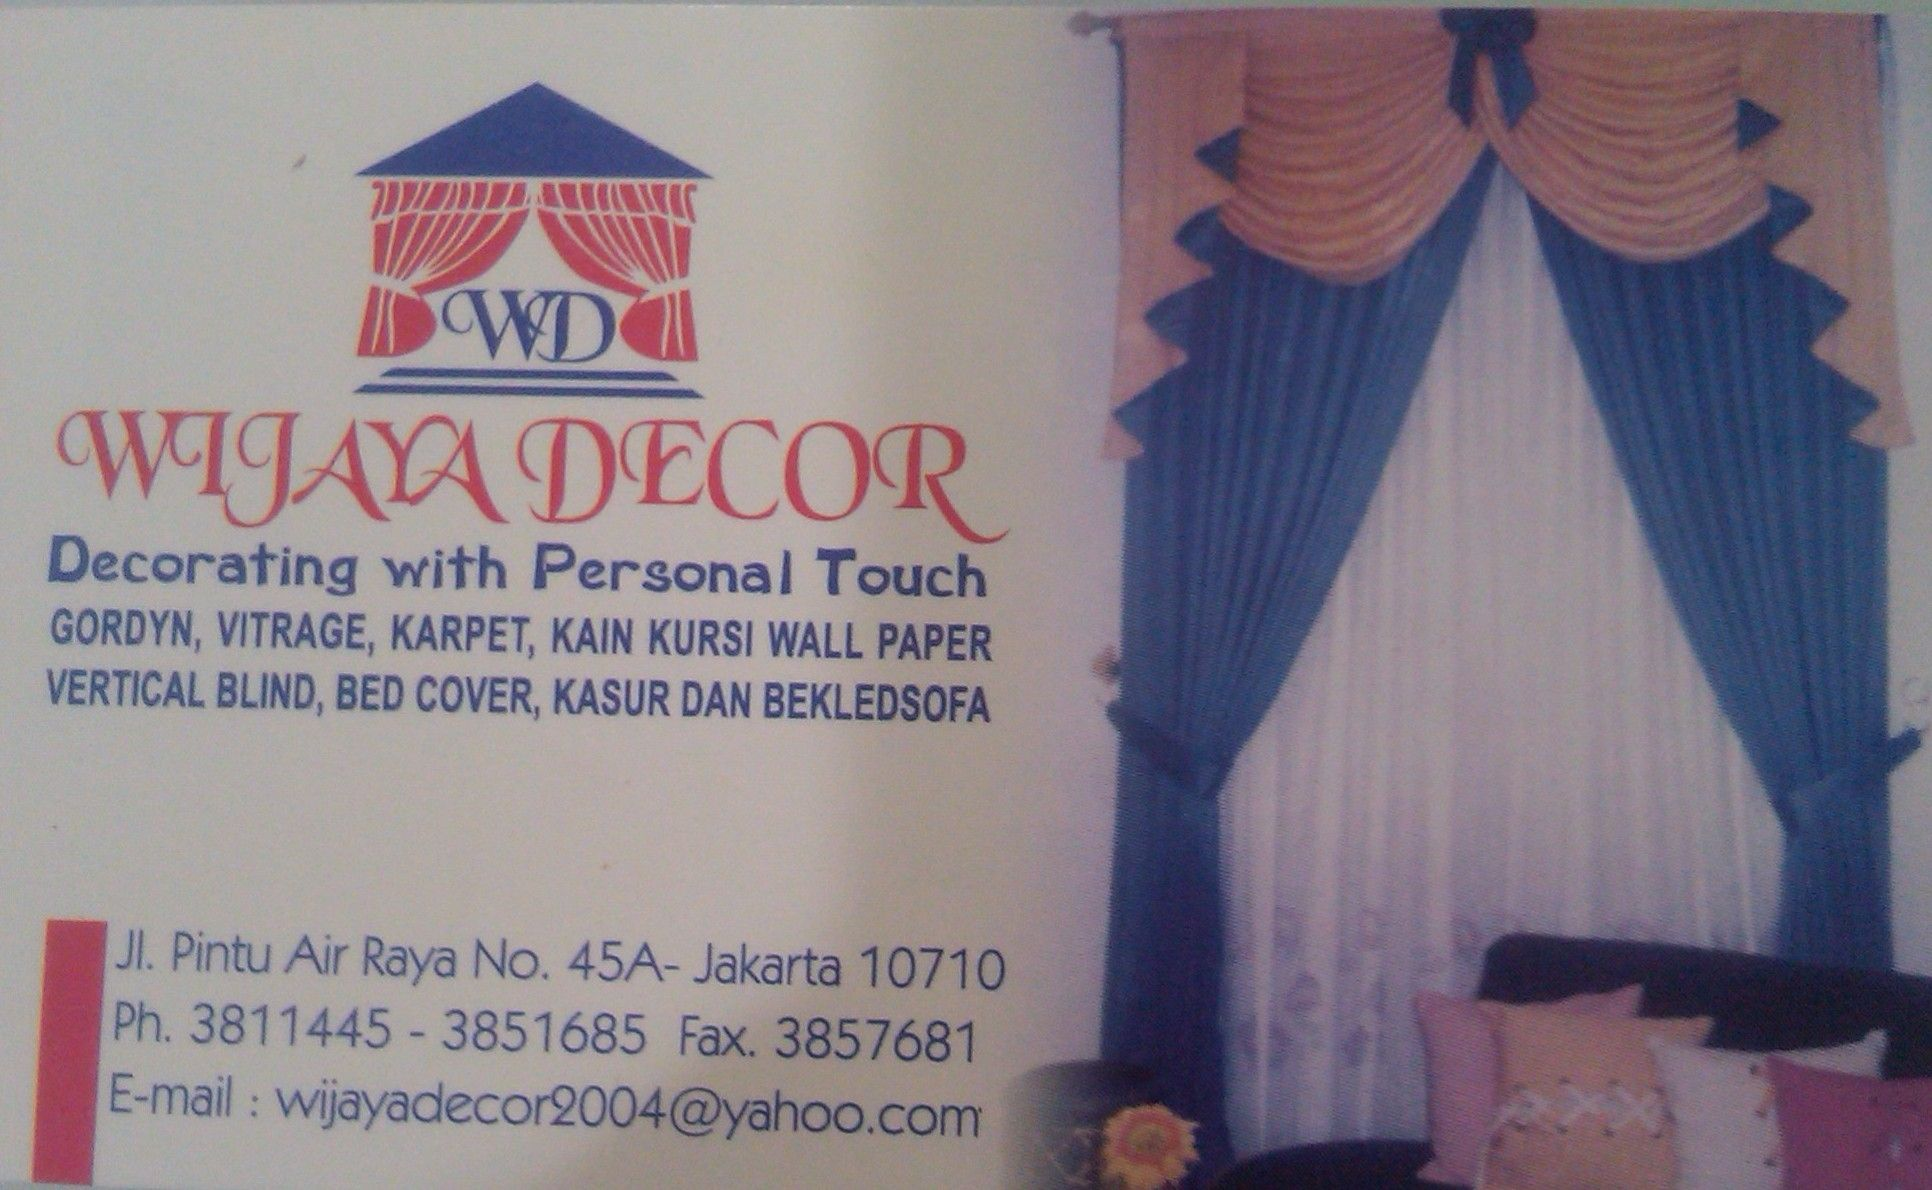 Wijaya Decor